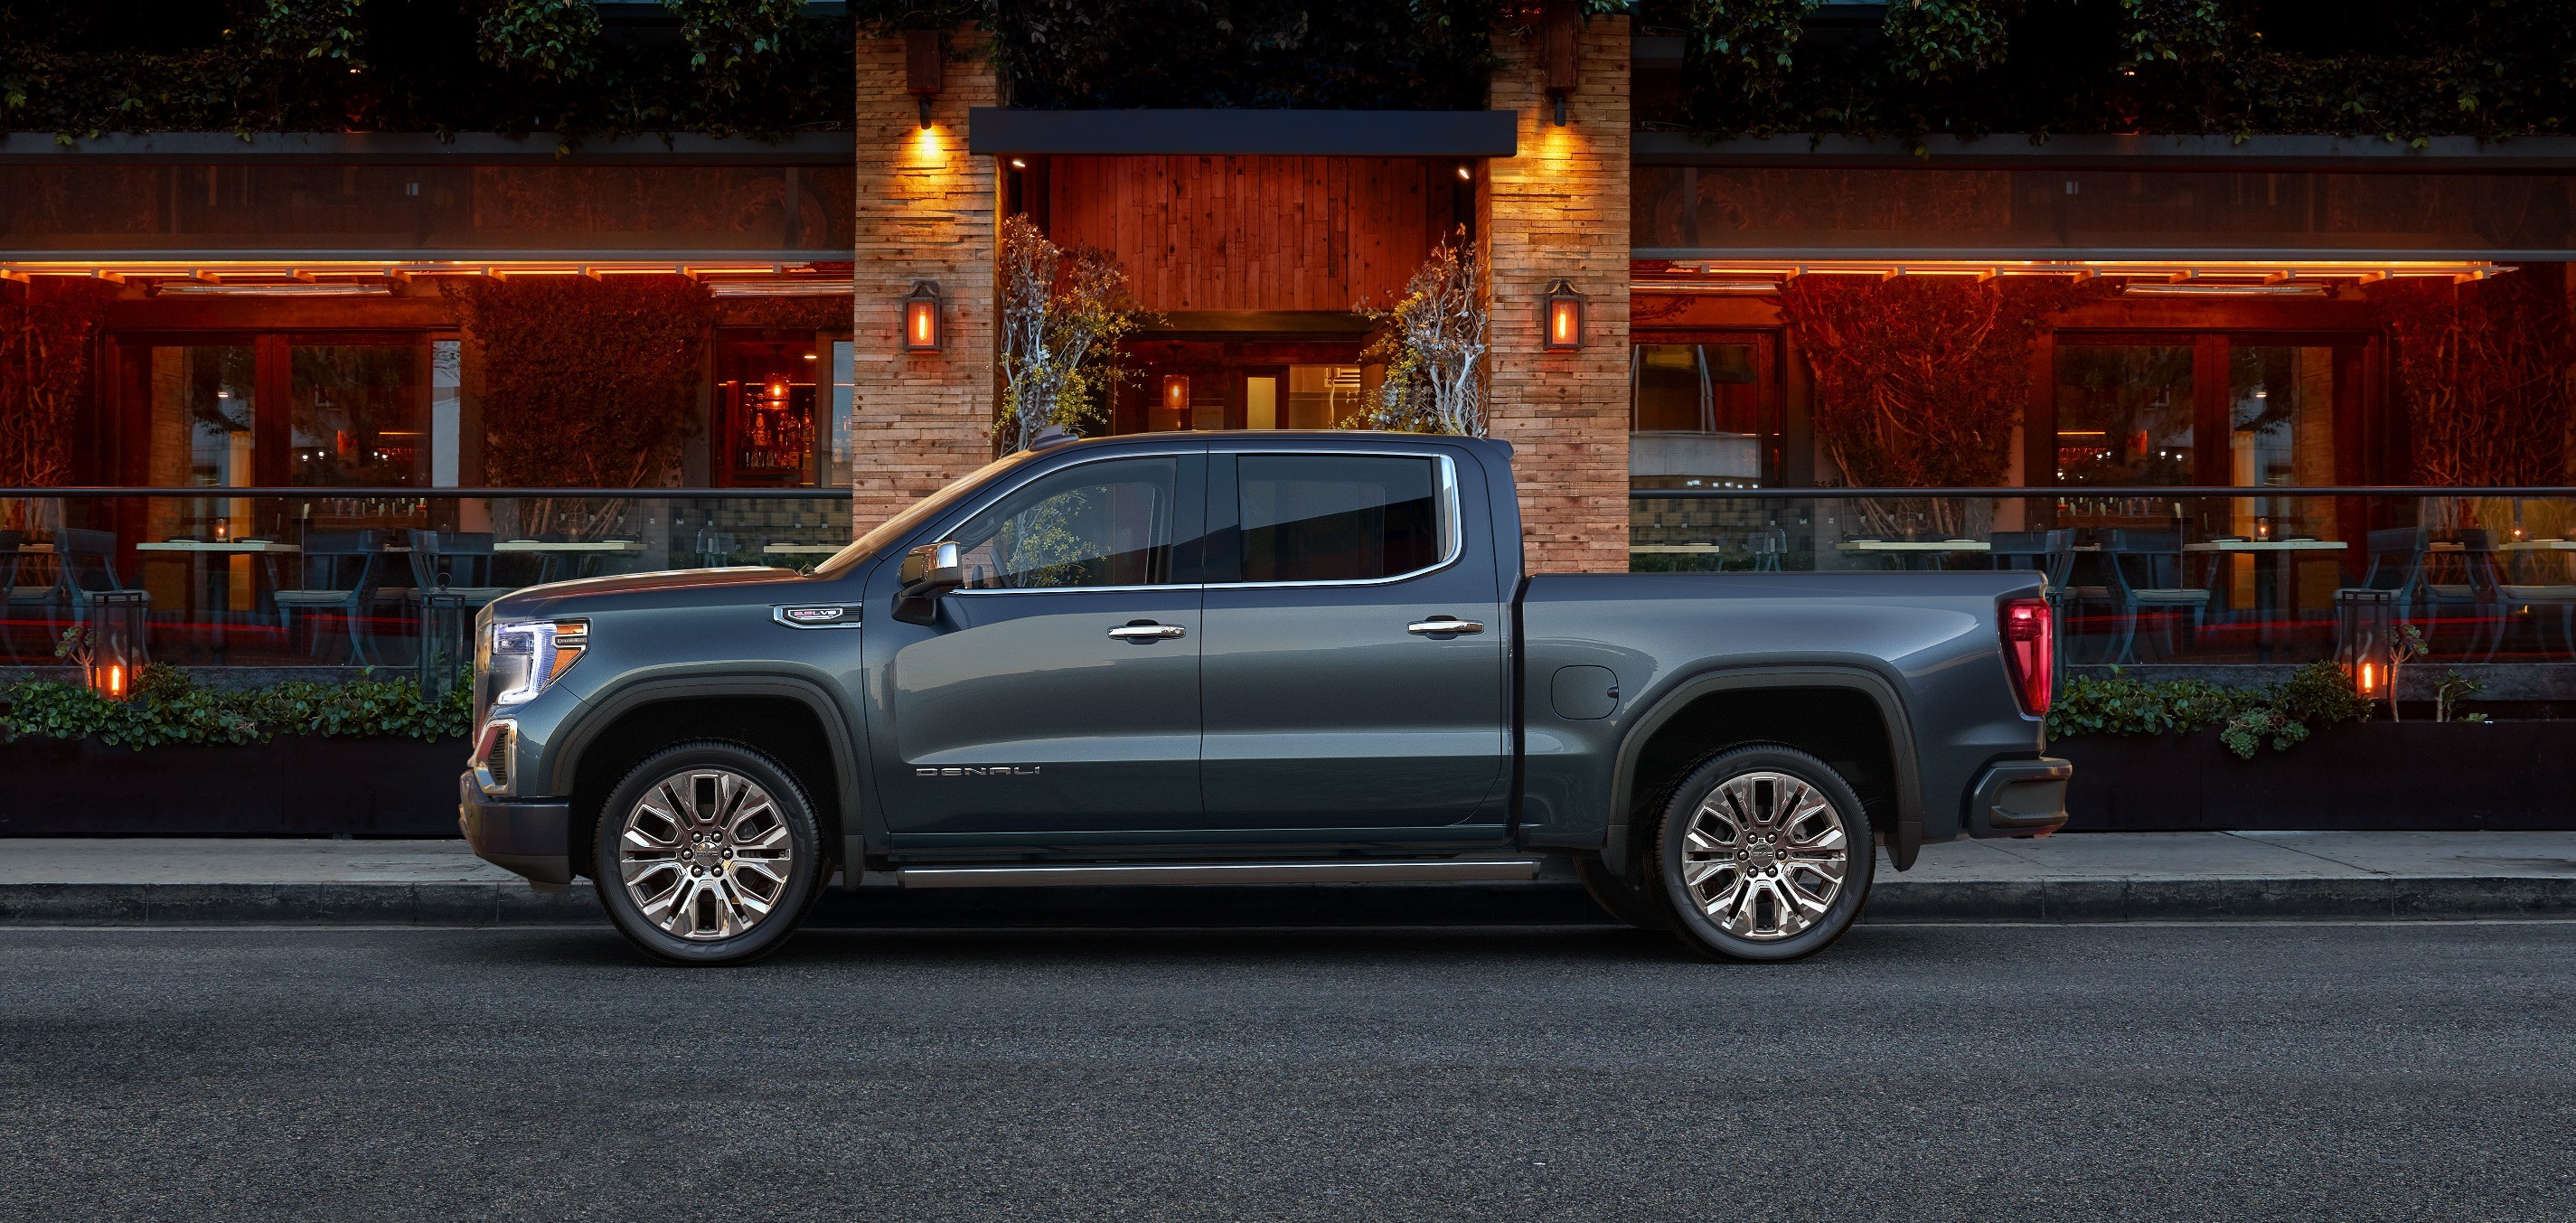 Gmc Sierra Duramaxsel Edges Out Ford F  Powerstrokesel